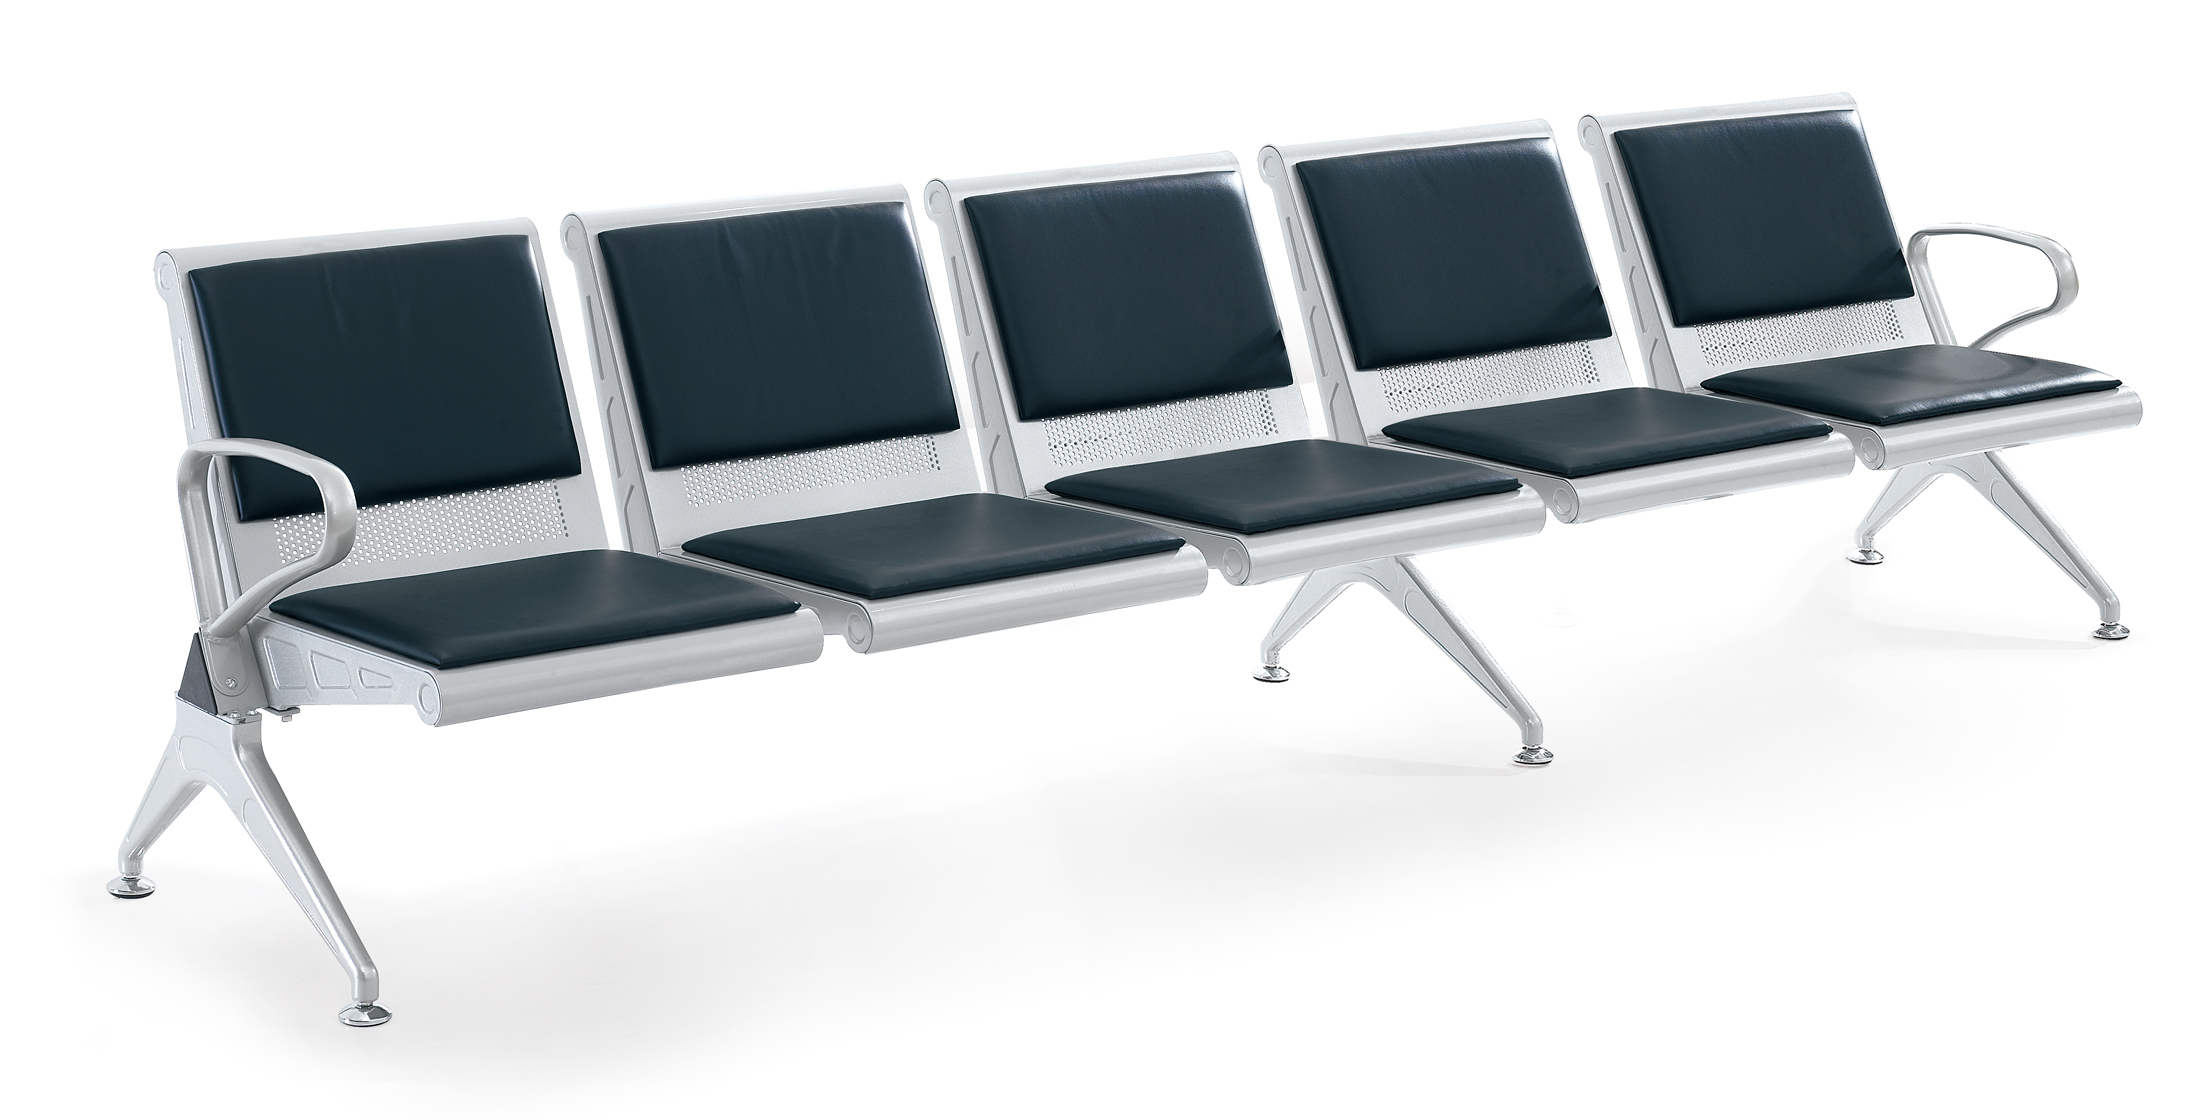 WNACS-FIVE SETAS METAL POWDER PAINTED AIRPORT WATIING CHAIR WITH PVC OR PU CUSHION